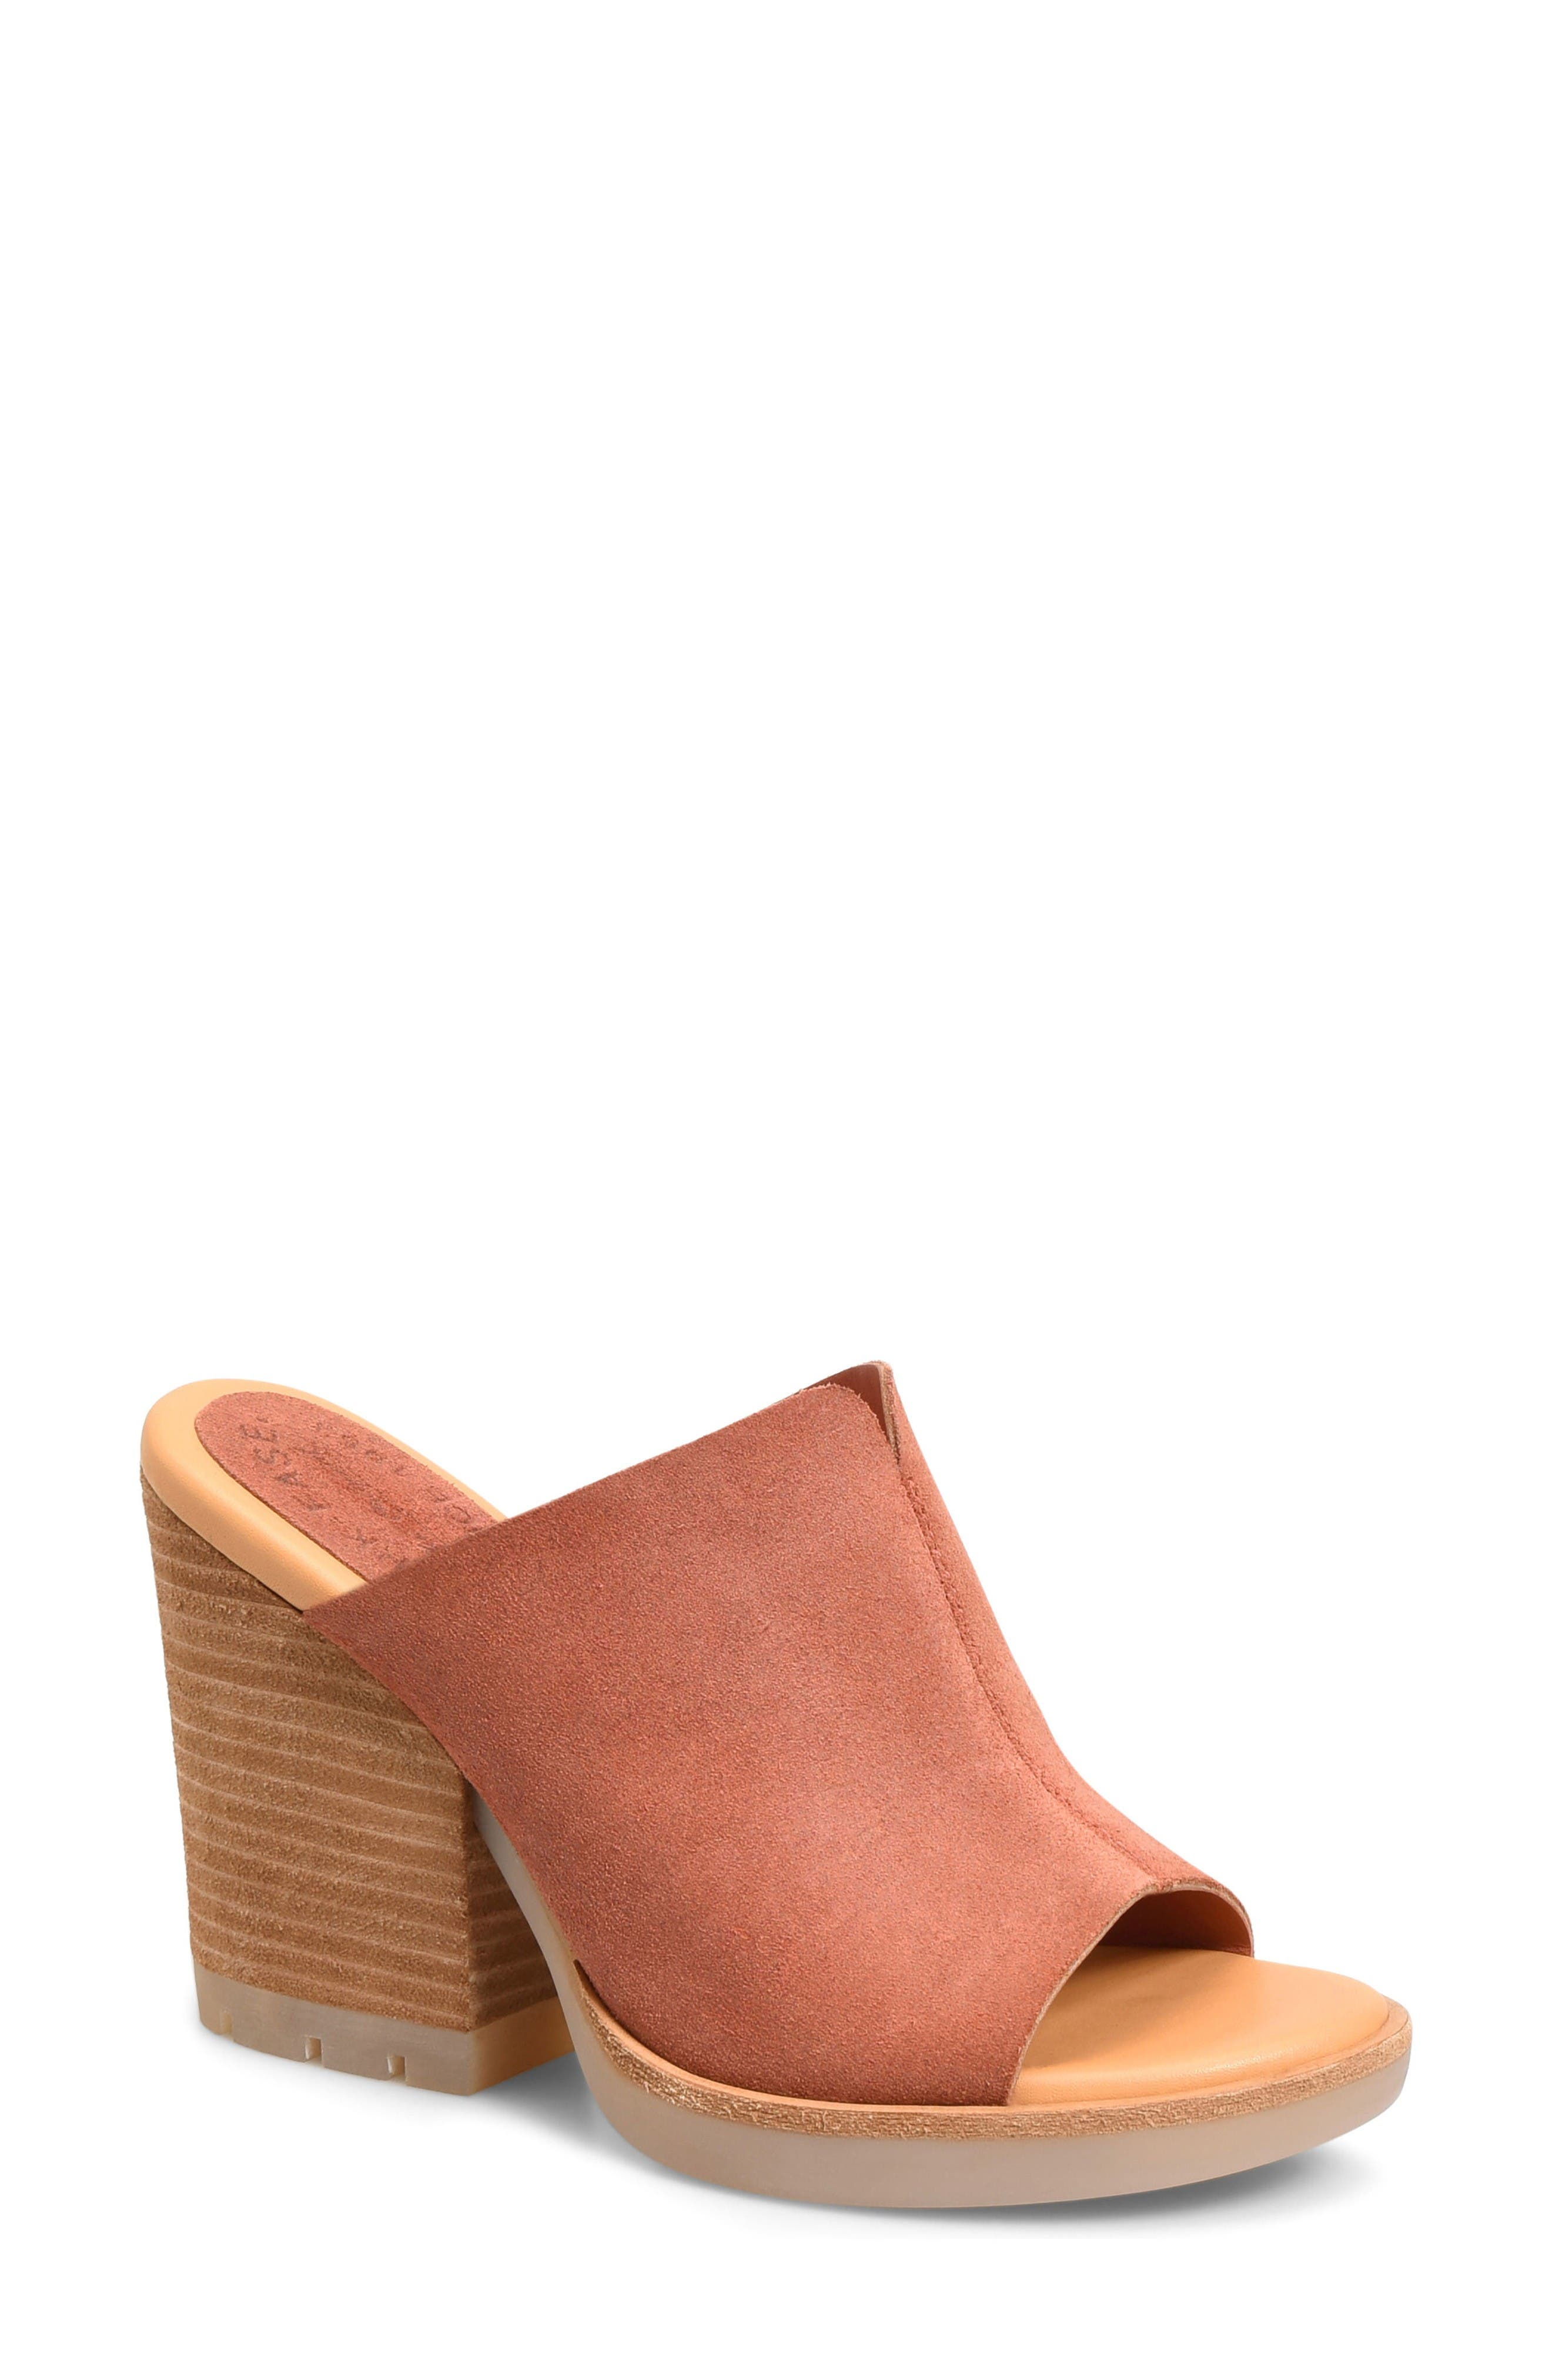 Main Image - Kork-Ease® Lawton Sandal (Women)